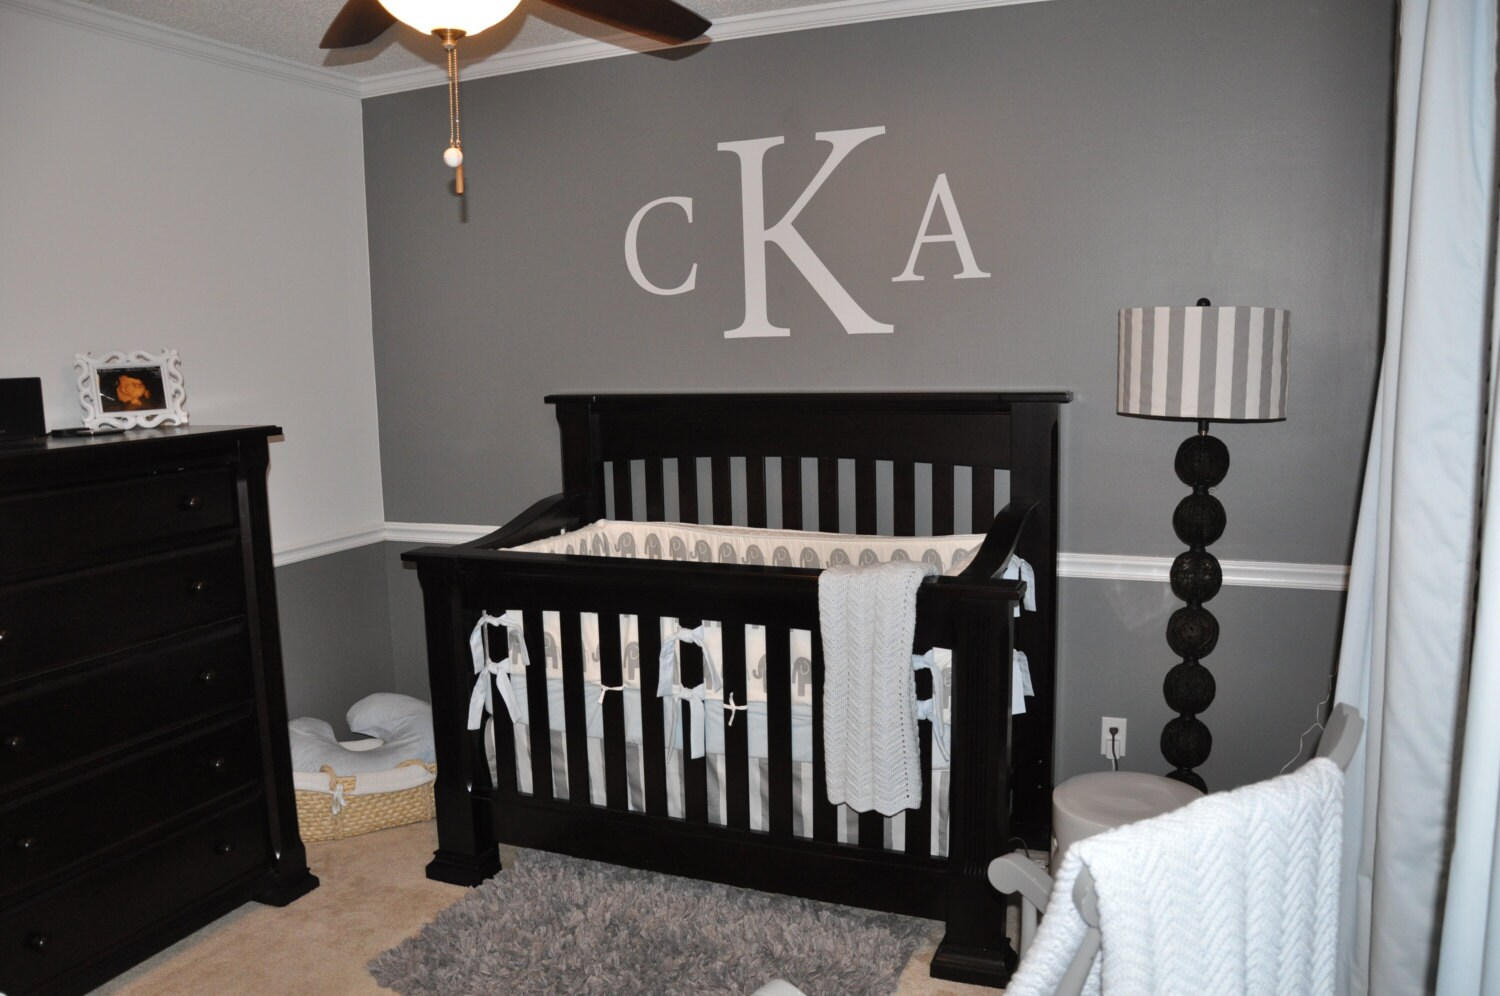 Monogram Wall Decal Large Monogram Wall Decal Personalized Decal Nursery Decal Bedroom Decal